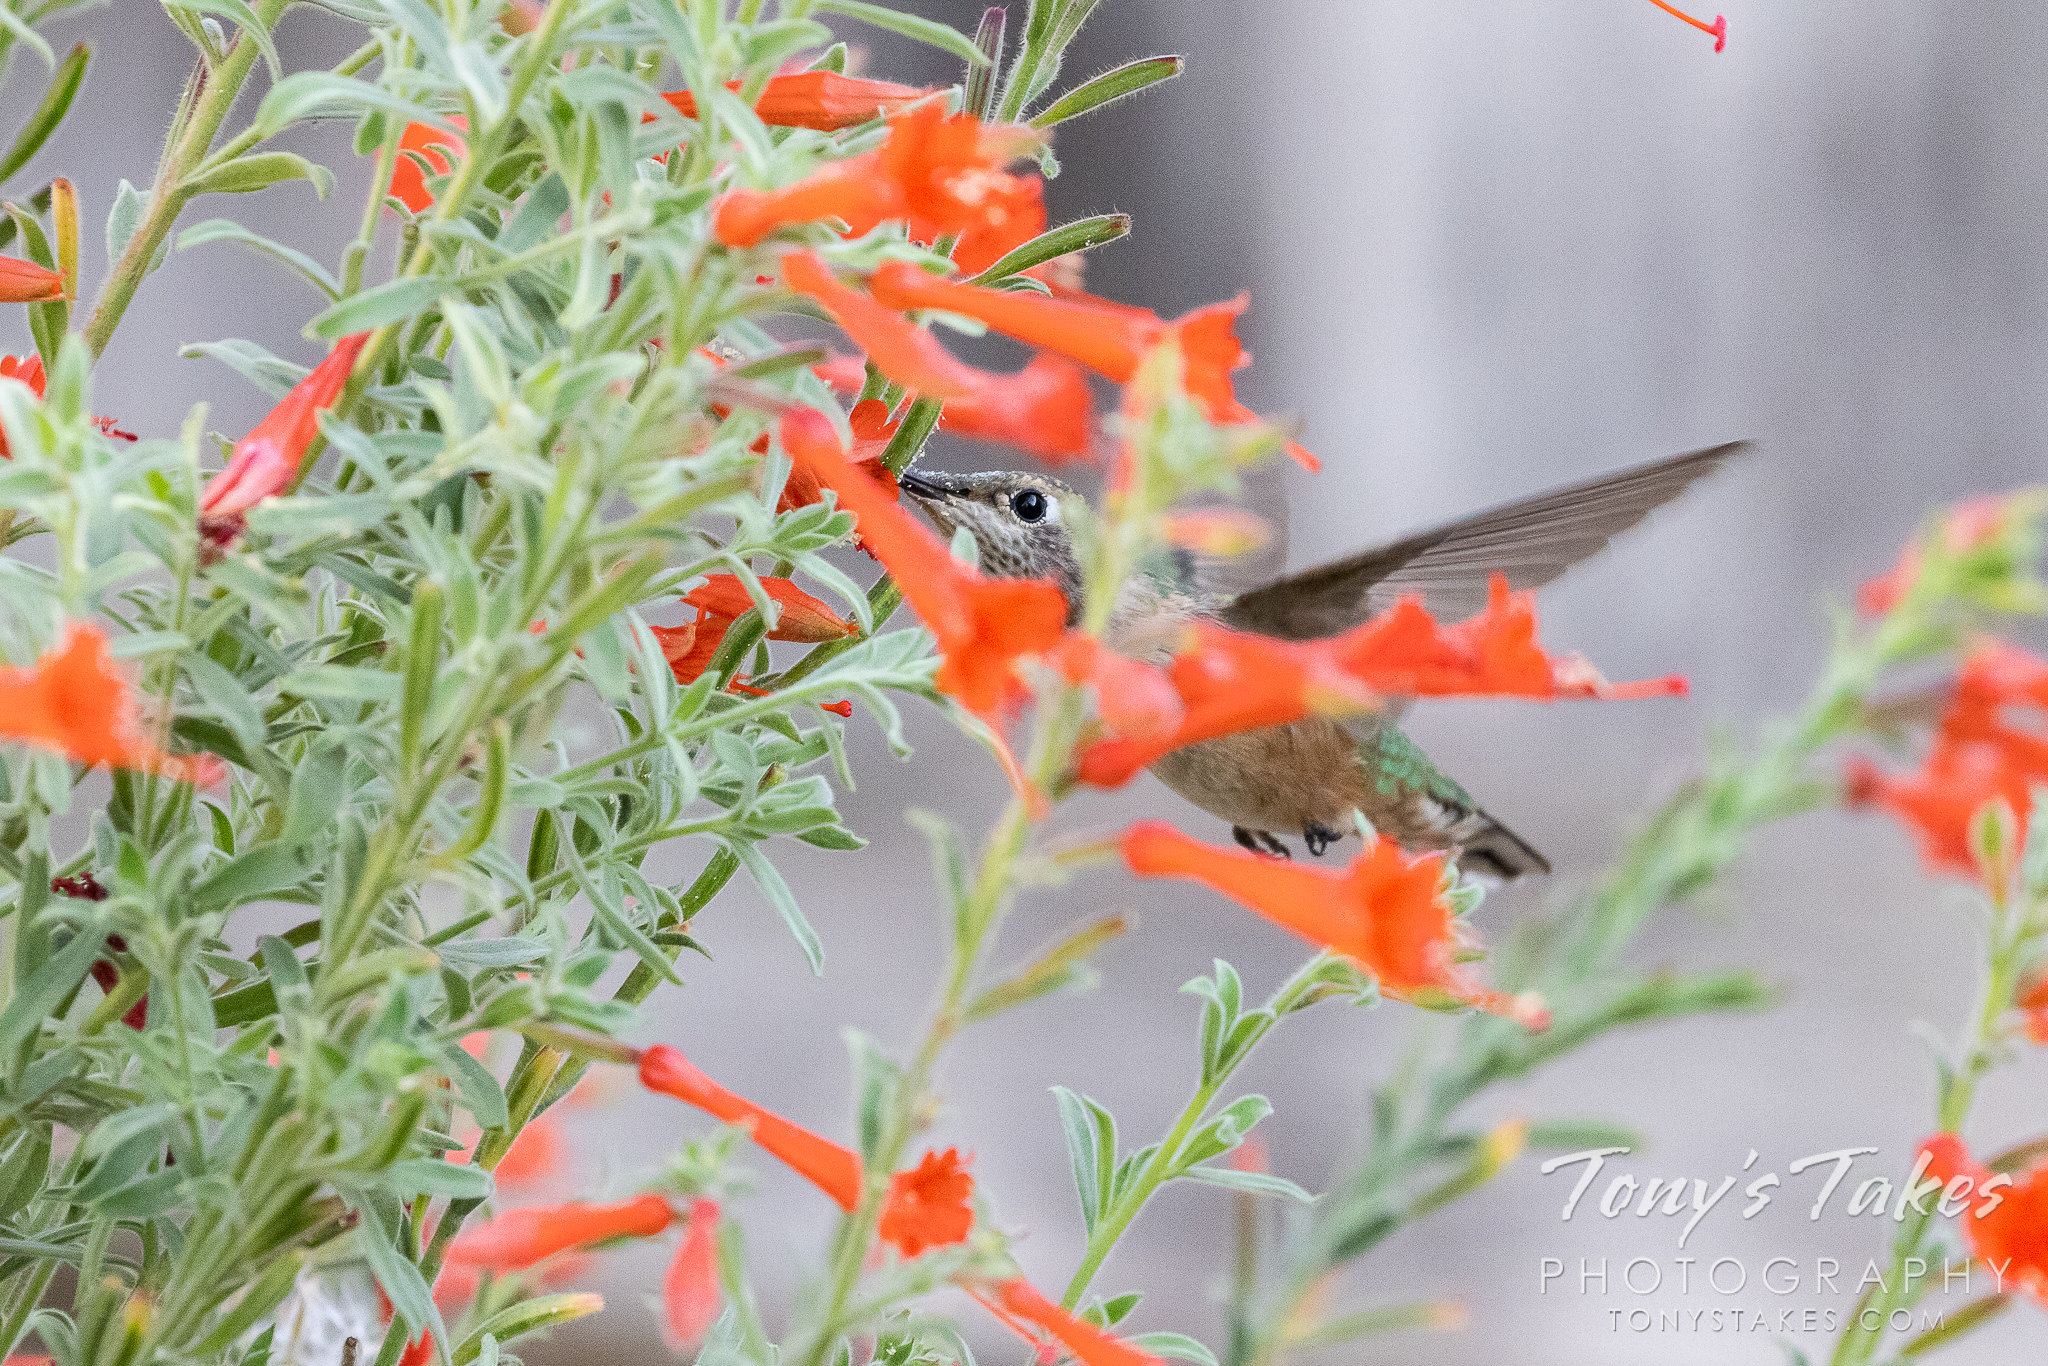 Backyard hummingbirds for National Hummingbird Day